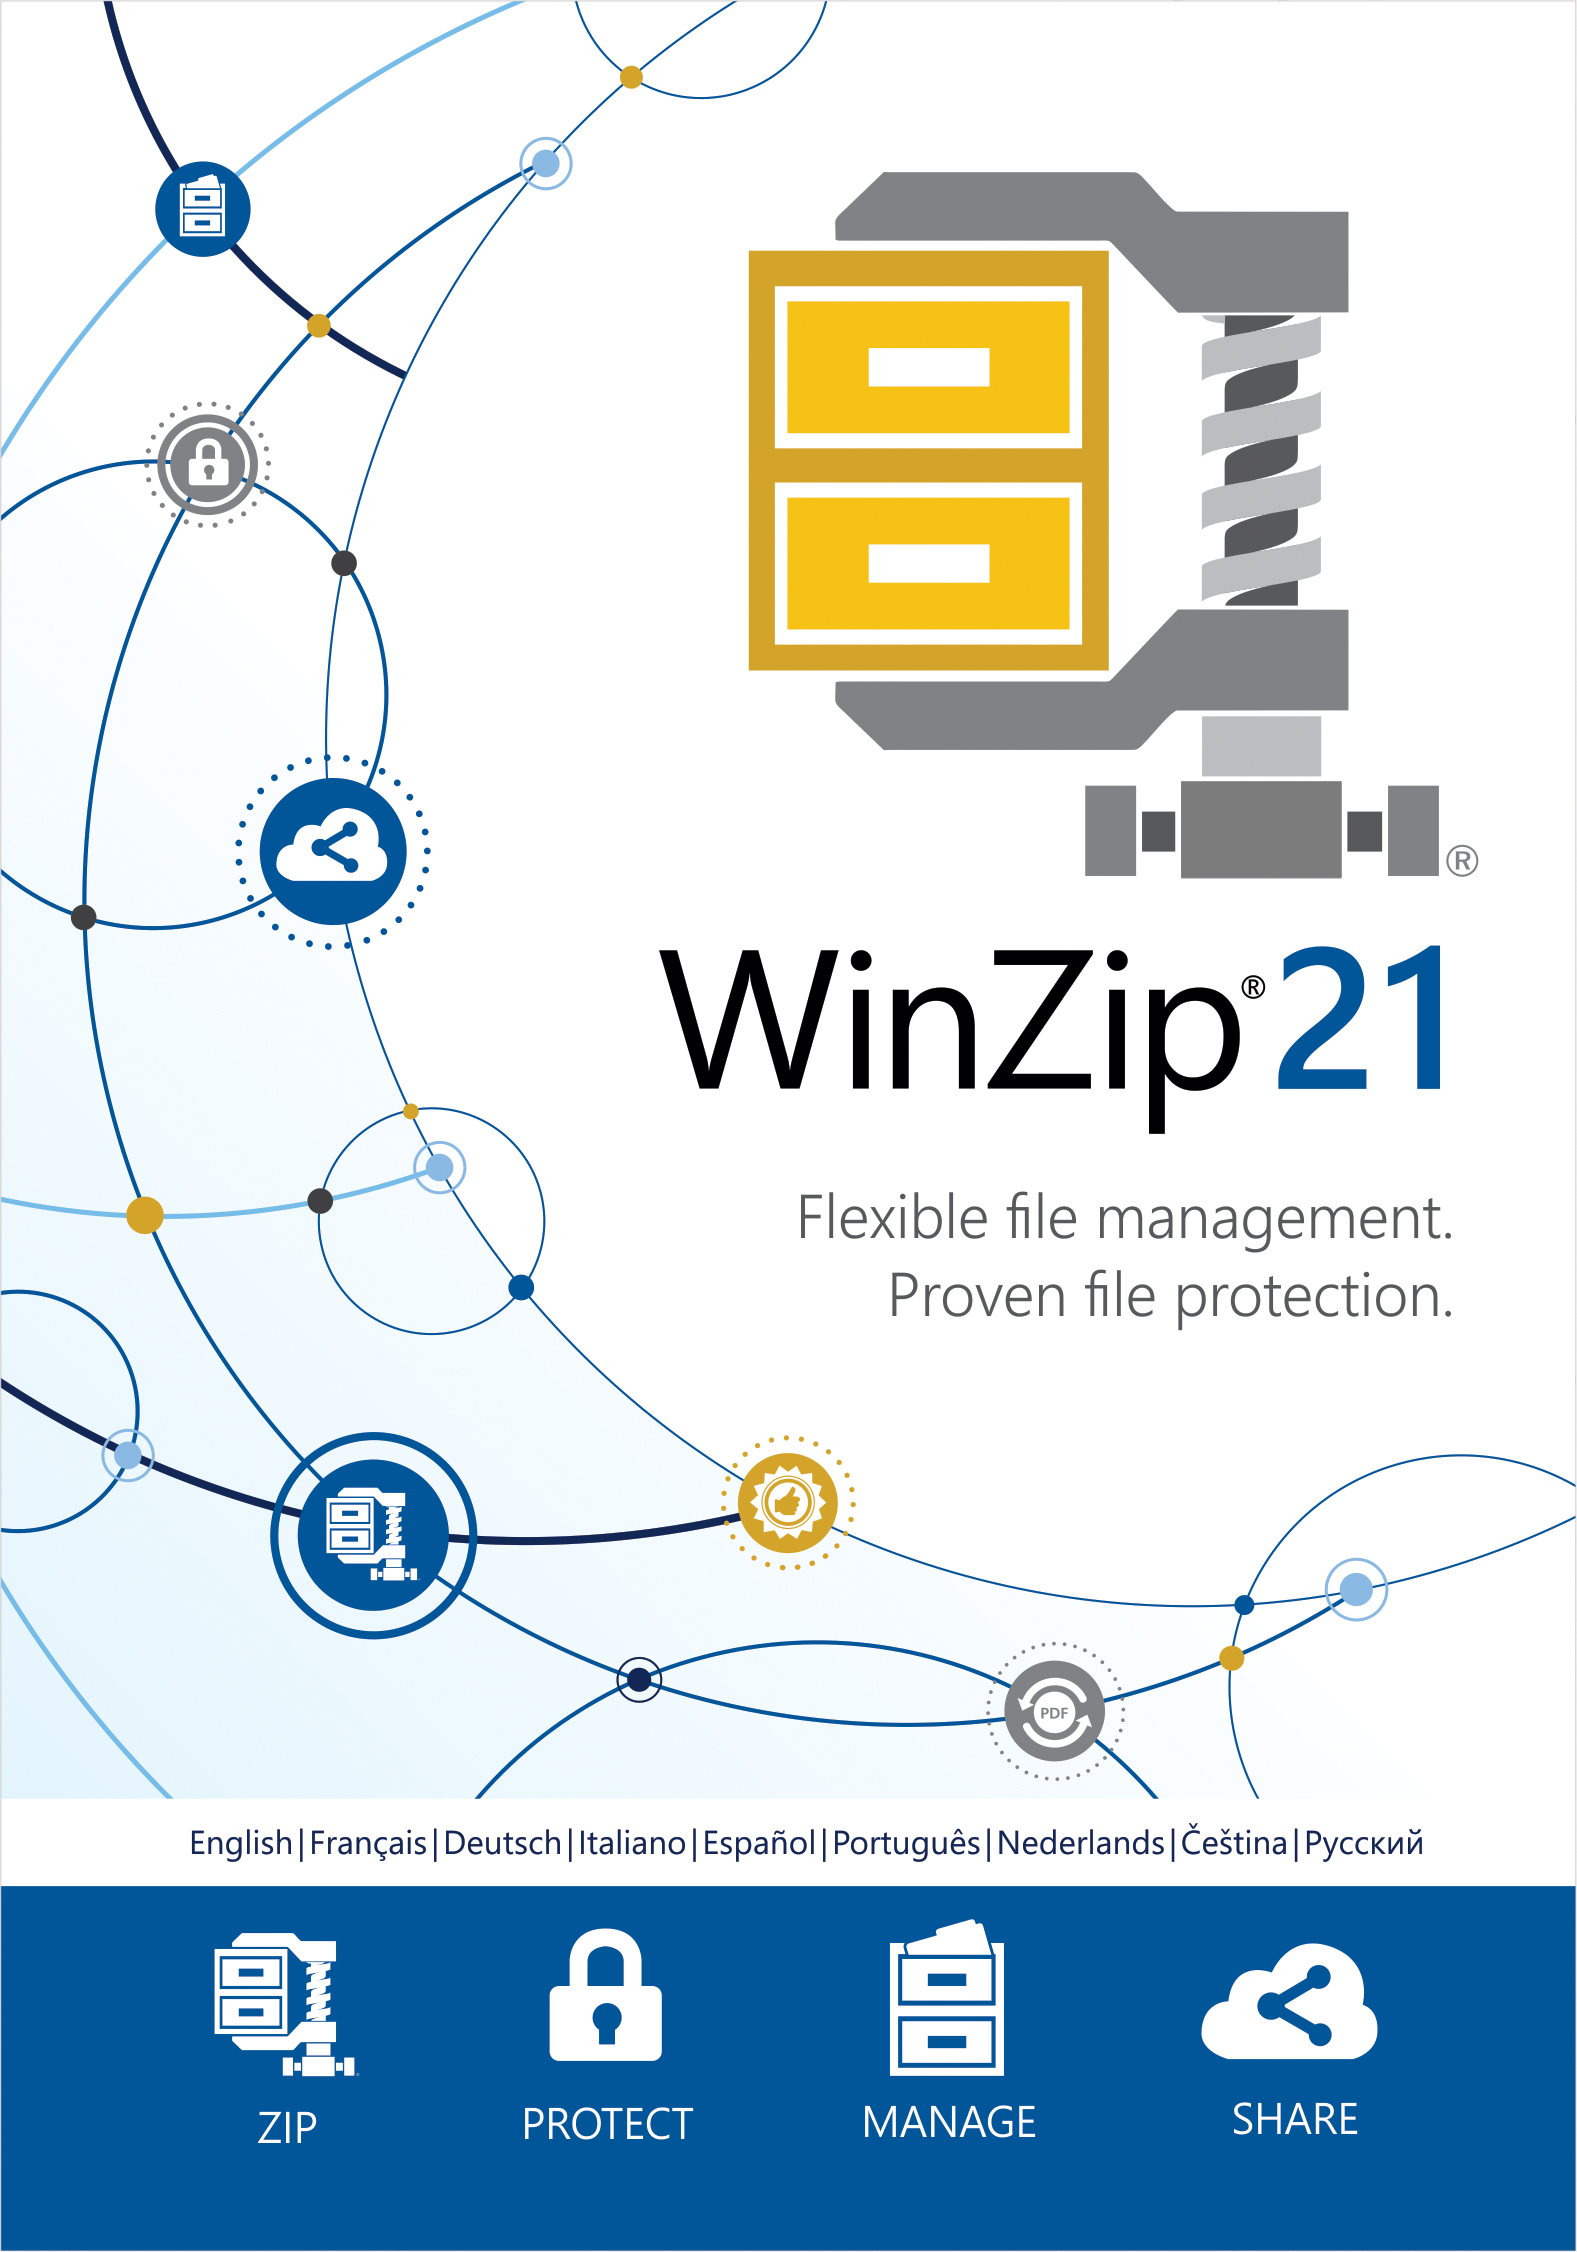 Winzip 16 has a new version: download a free trial now.